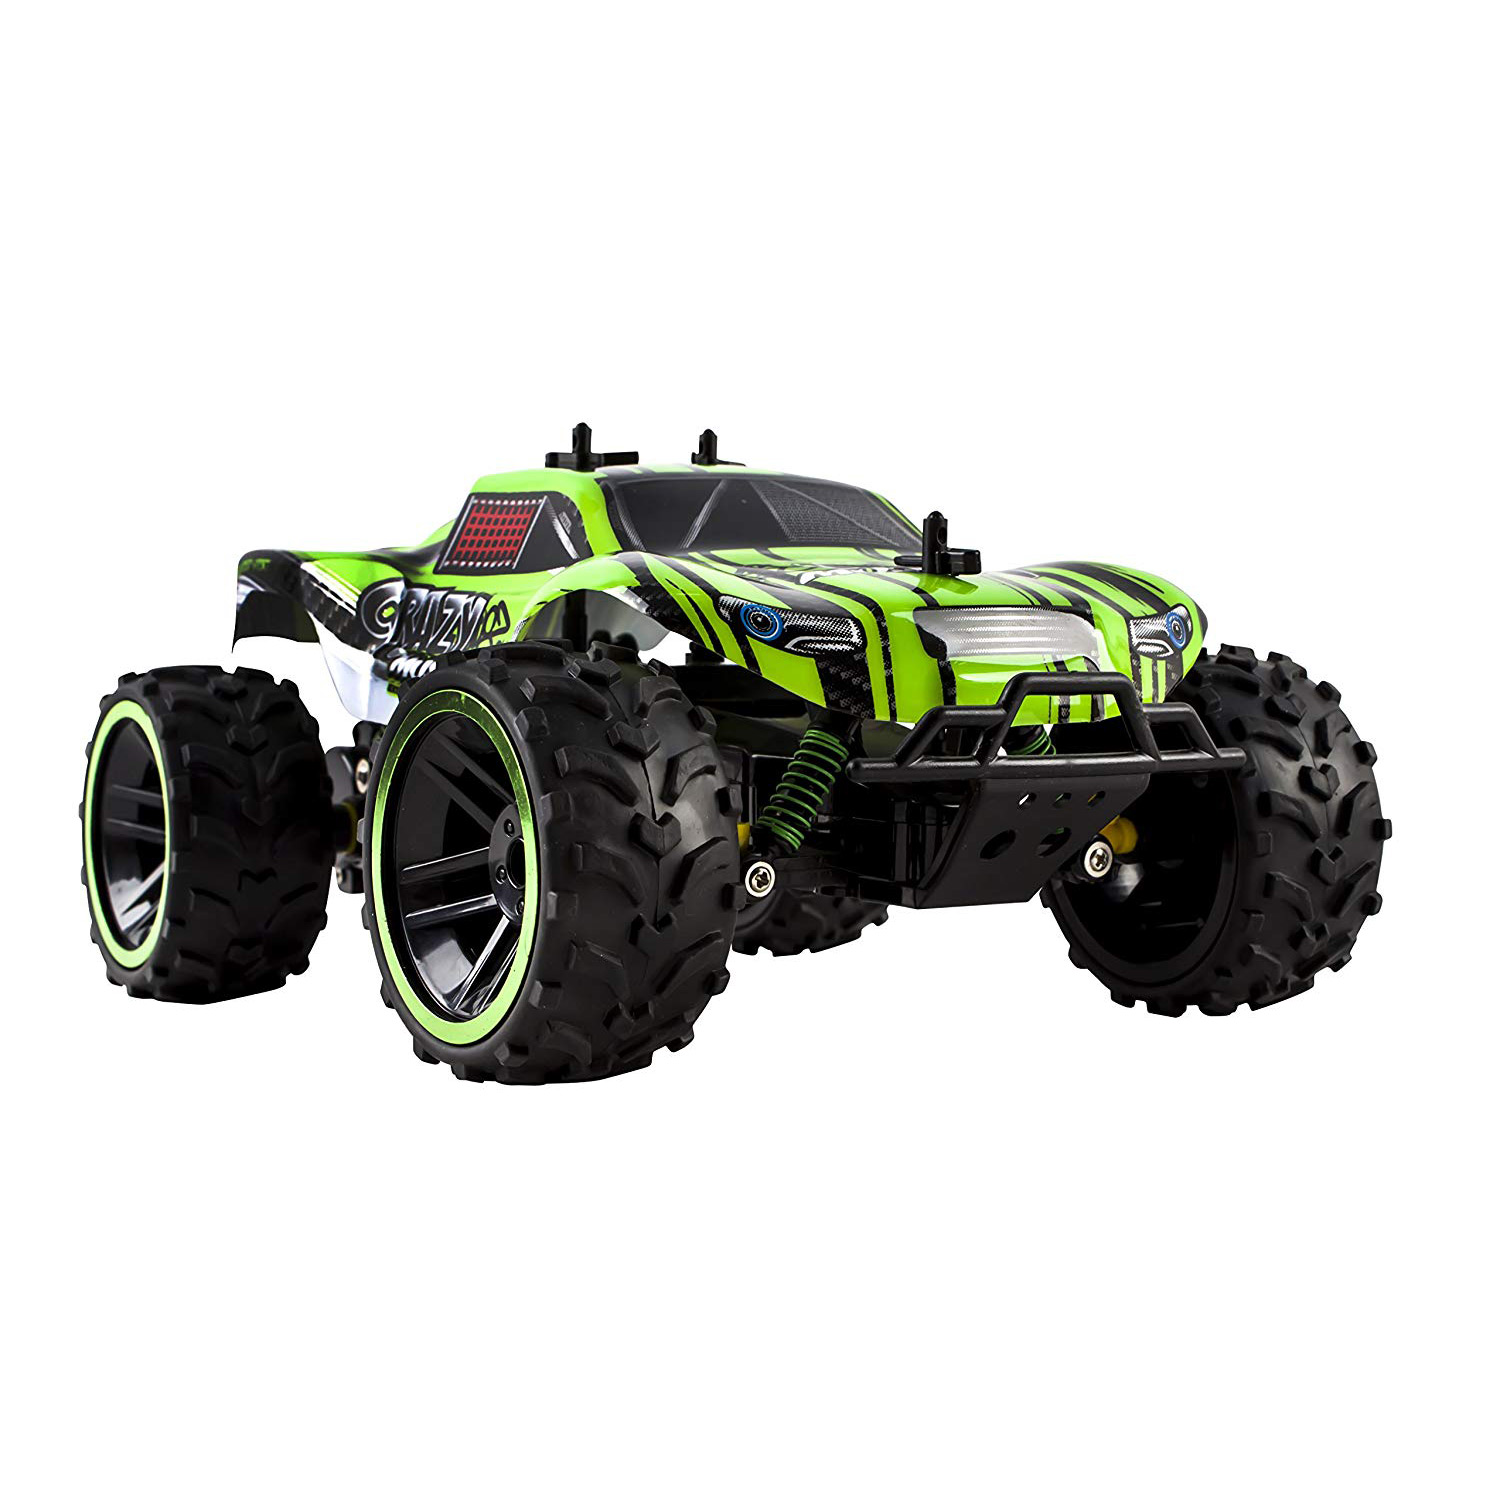 Speed Muscle RC Buggy 2.4Ghz 1:16 Scale Remote Control Truggy Ready to Run With Working Suspension And Spring Shock Absorbers for Indoor Outdoor And Off-Road Use Strong Build Toy (Green)